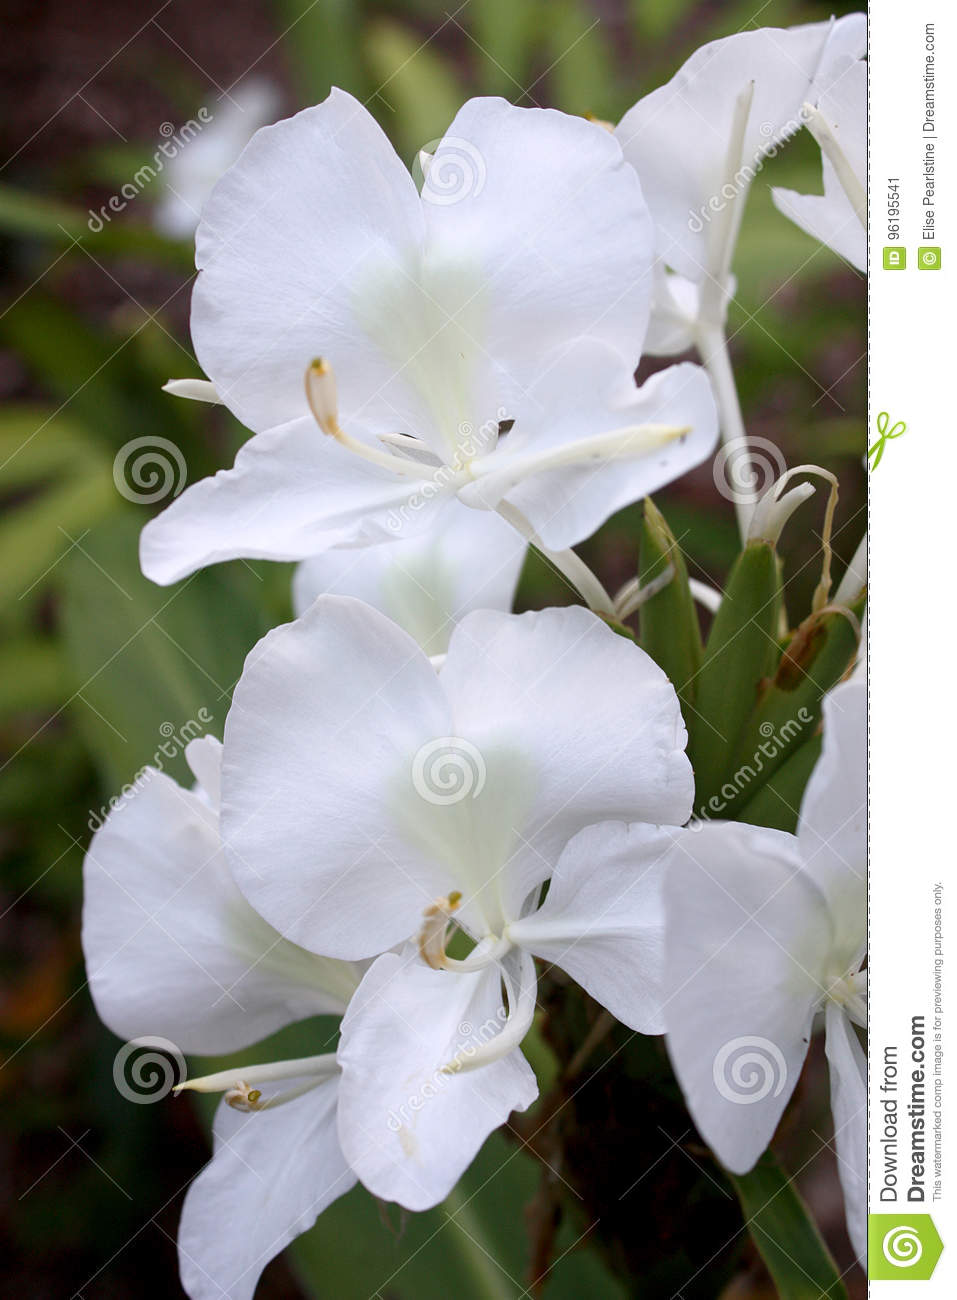 Butterfly ginger hedychium coronarium with white flowers stock image download butterfly ginger hedychium coronarium with white flowers stock image image of flower floral mightylinksfo